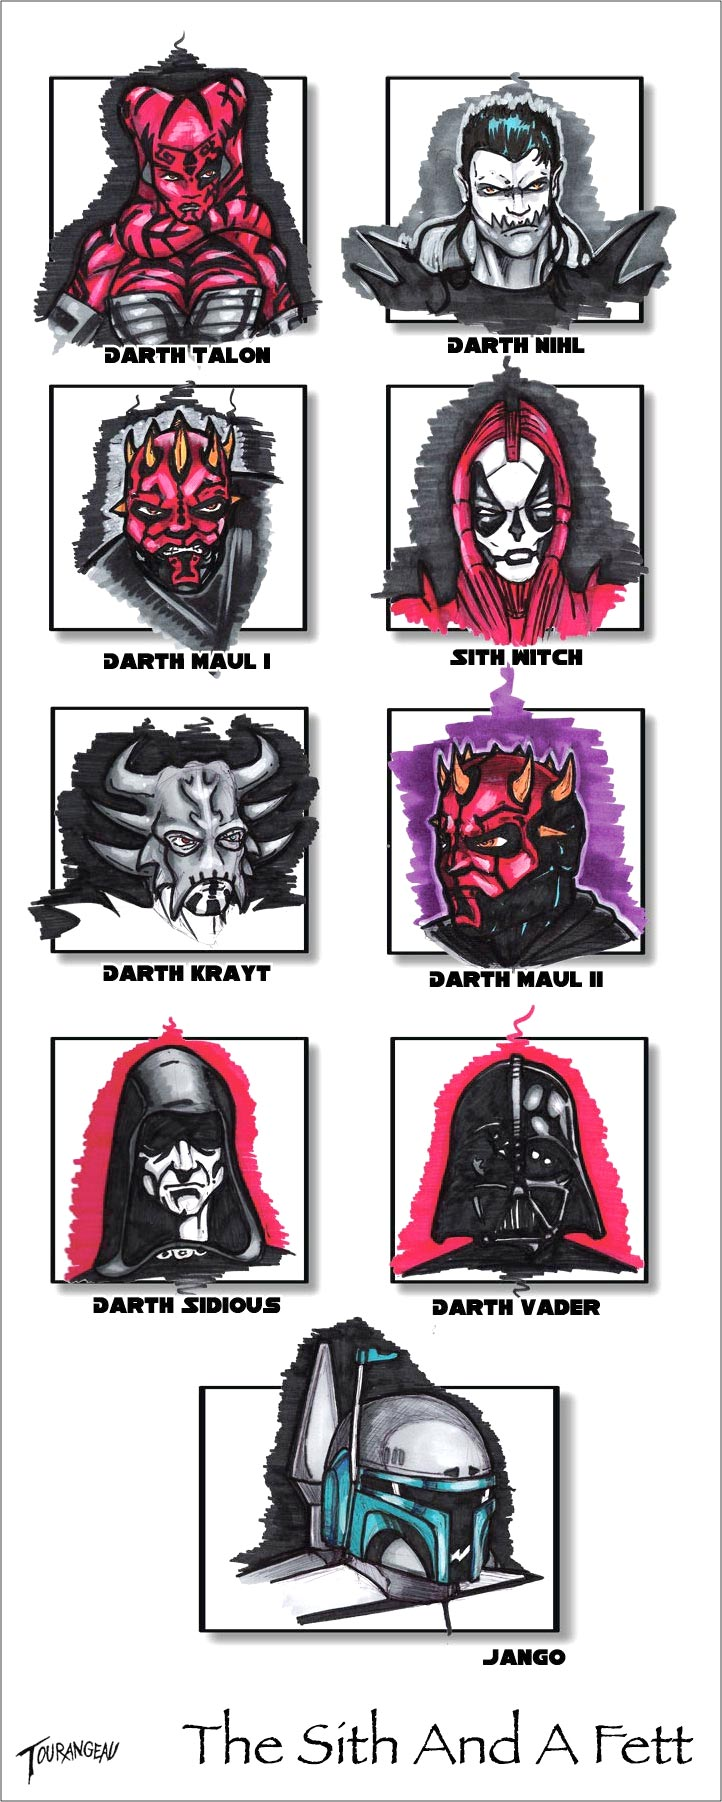 The Sith And A Fett by stourangeau